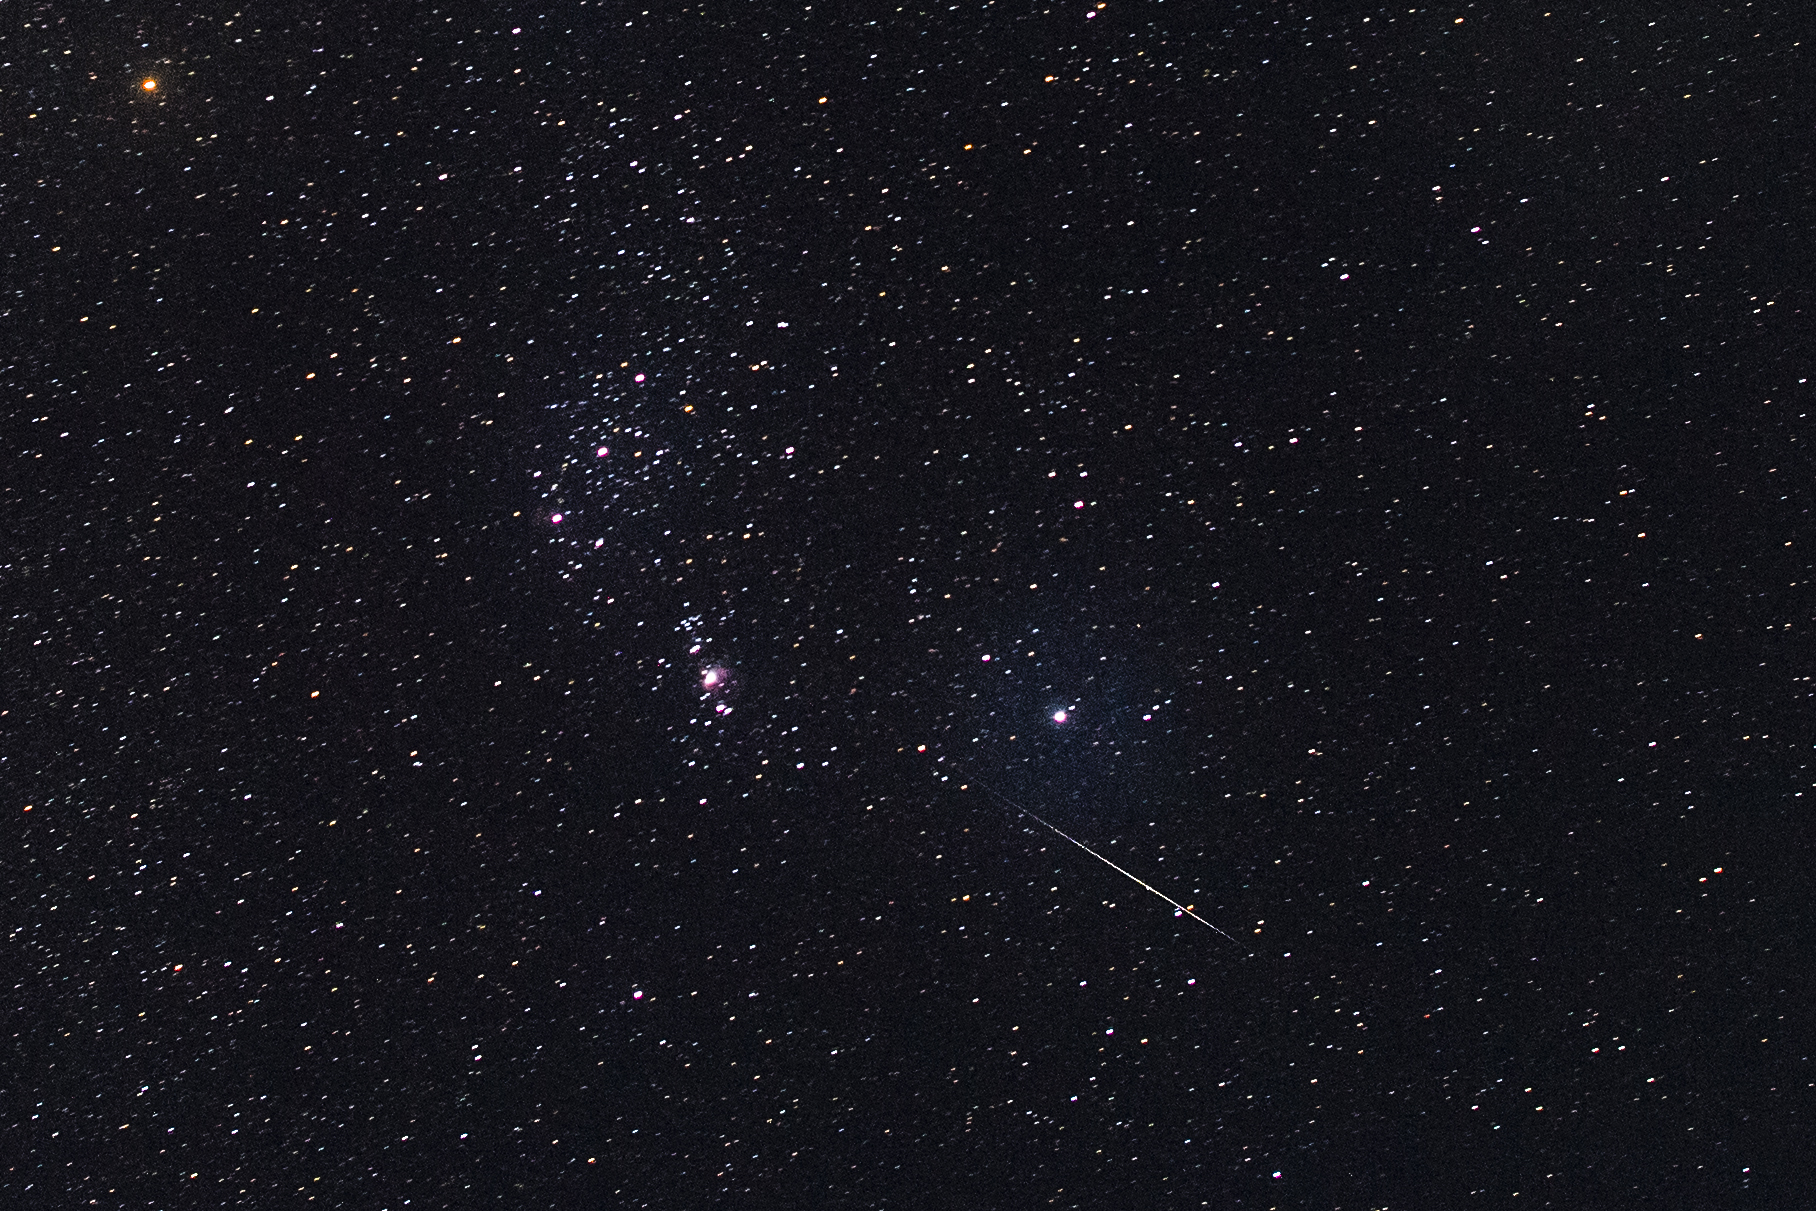 The annual Geminid meteor shower peaks Friday and Saturday